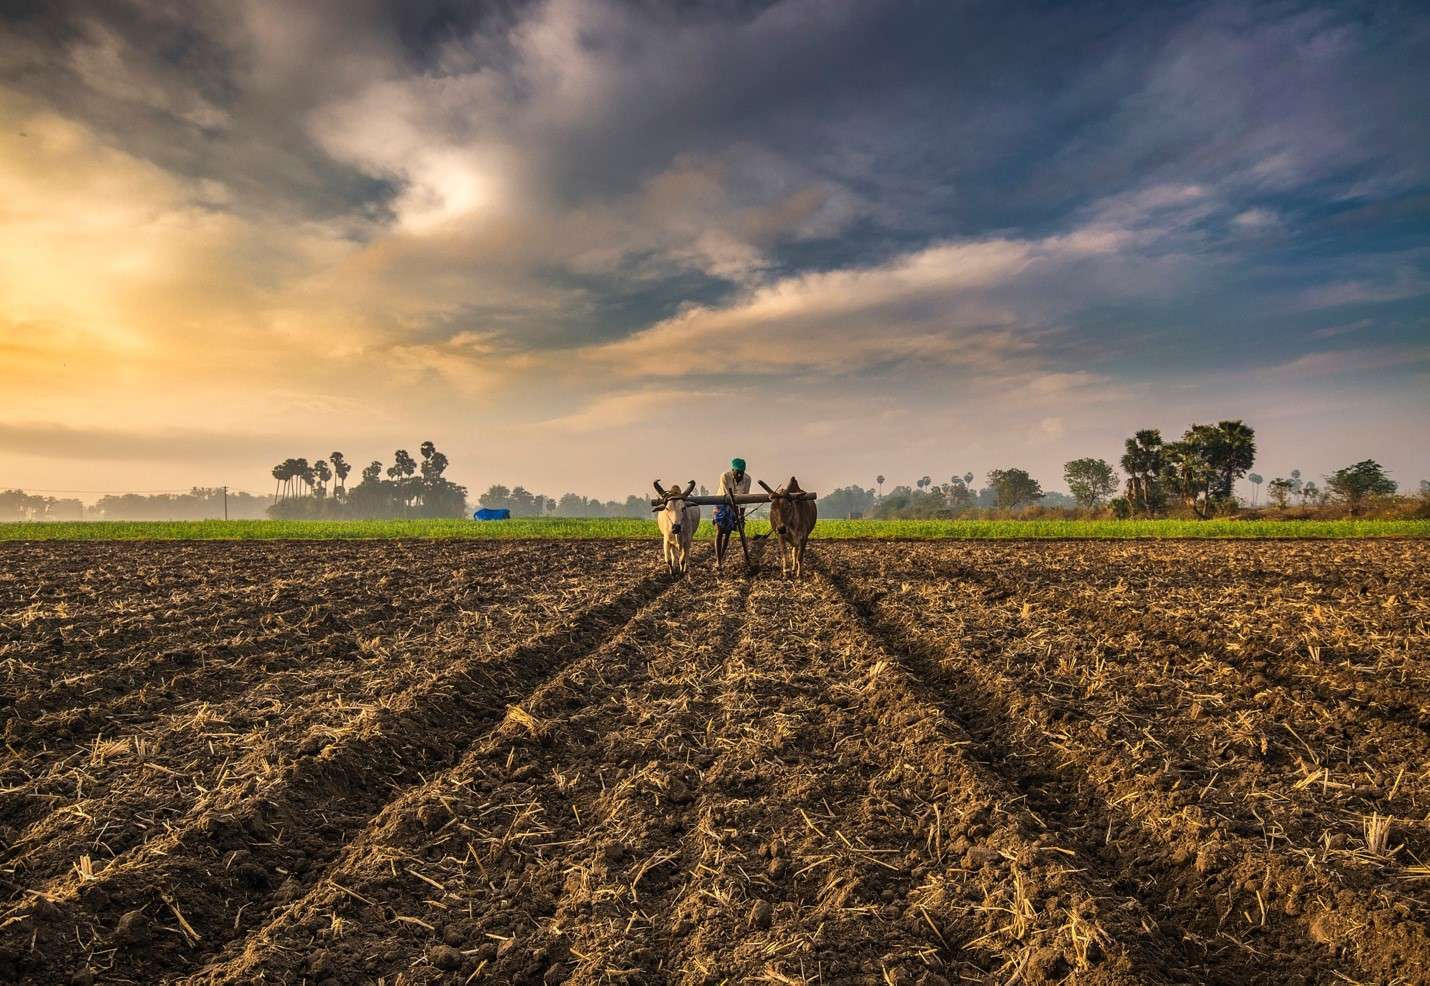 3-reasons-for-indias-water-crisis-farmer-with-cattle